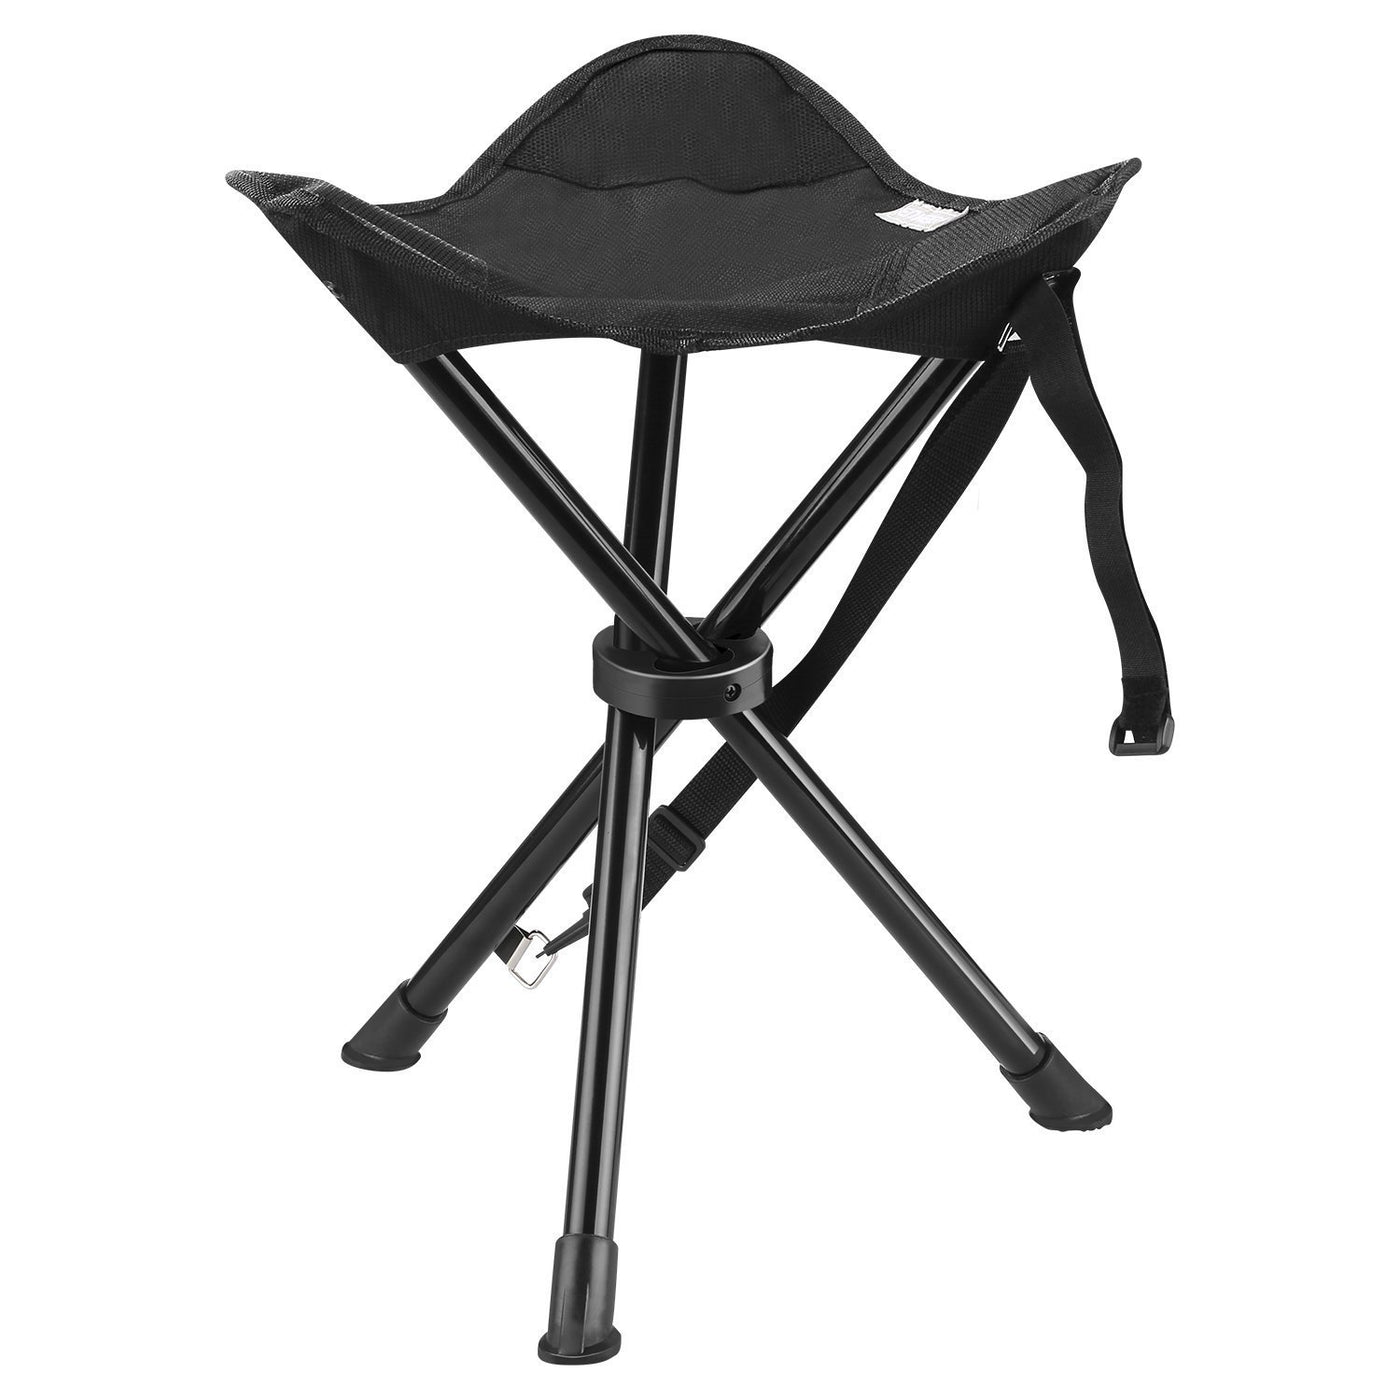 Portable Tripod Stool Folding Chair – ENKEEO